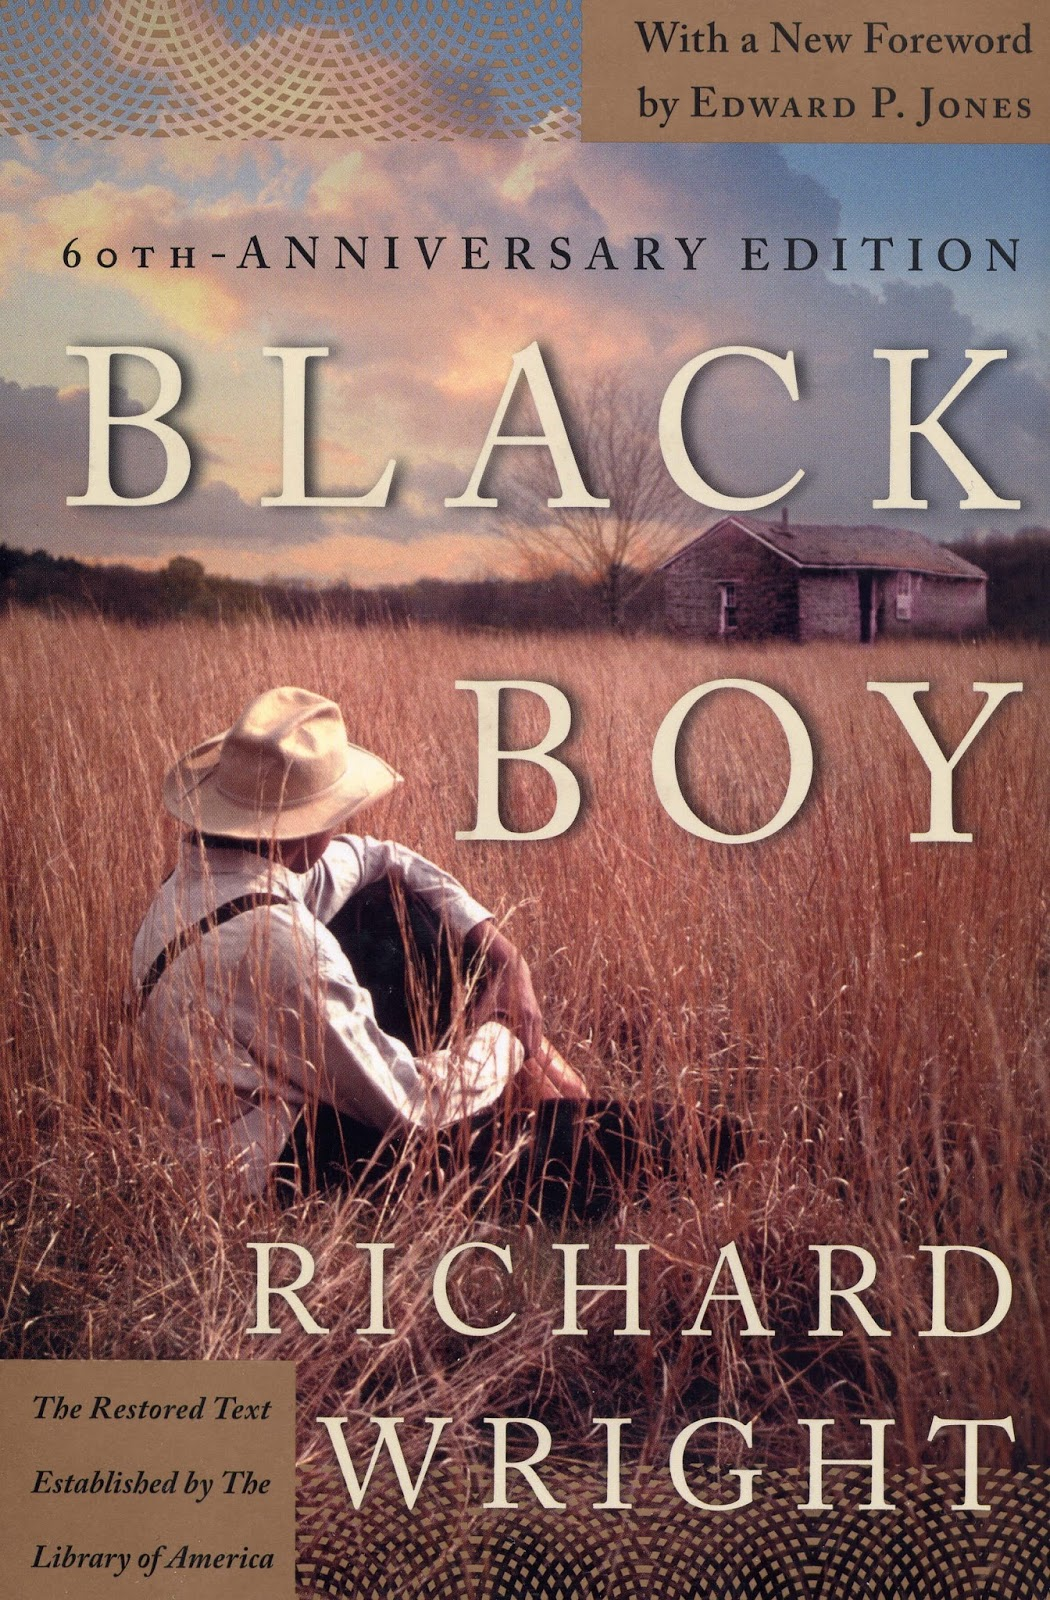 an analysis of the american hunger in richard wrights book black boy Native son, black boy, 12 million black voices, the long dream, uncle tom's children, black power, the outsider, and white man listen are richard wright's works that are releavent in the study of history.